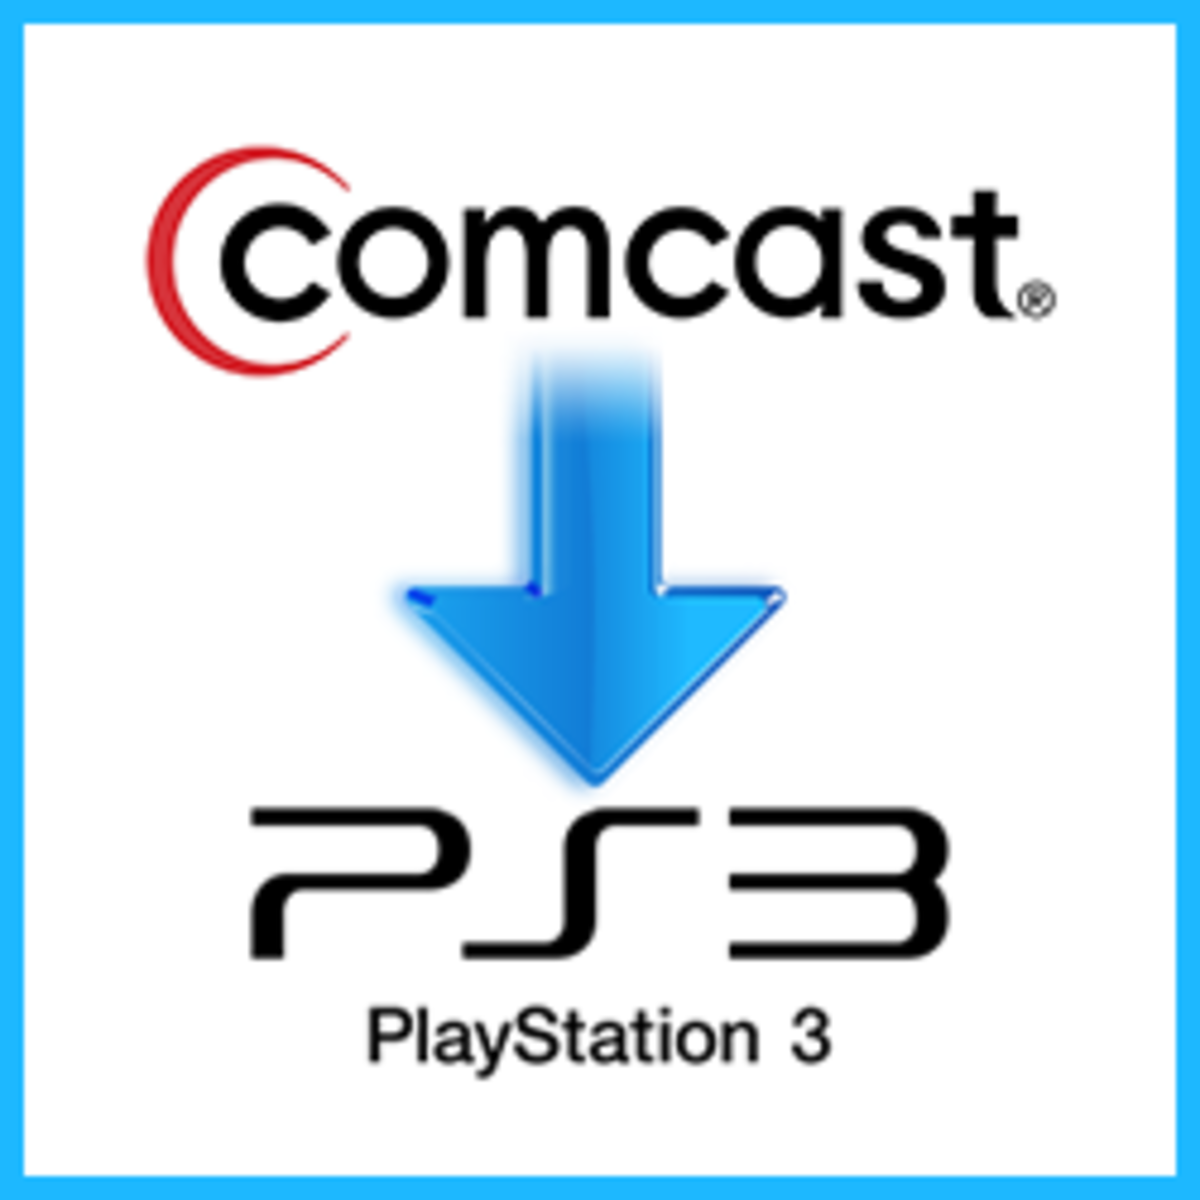 how-to-connect-ps3-to-comcast-wifi